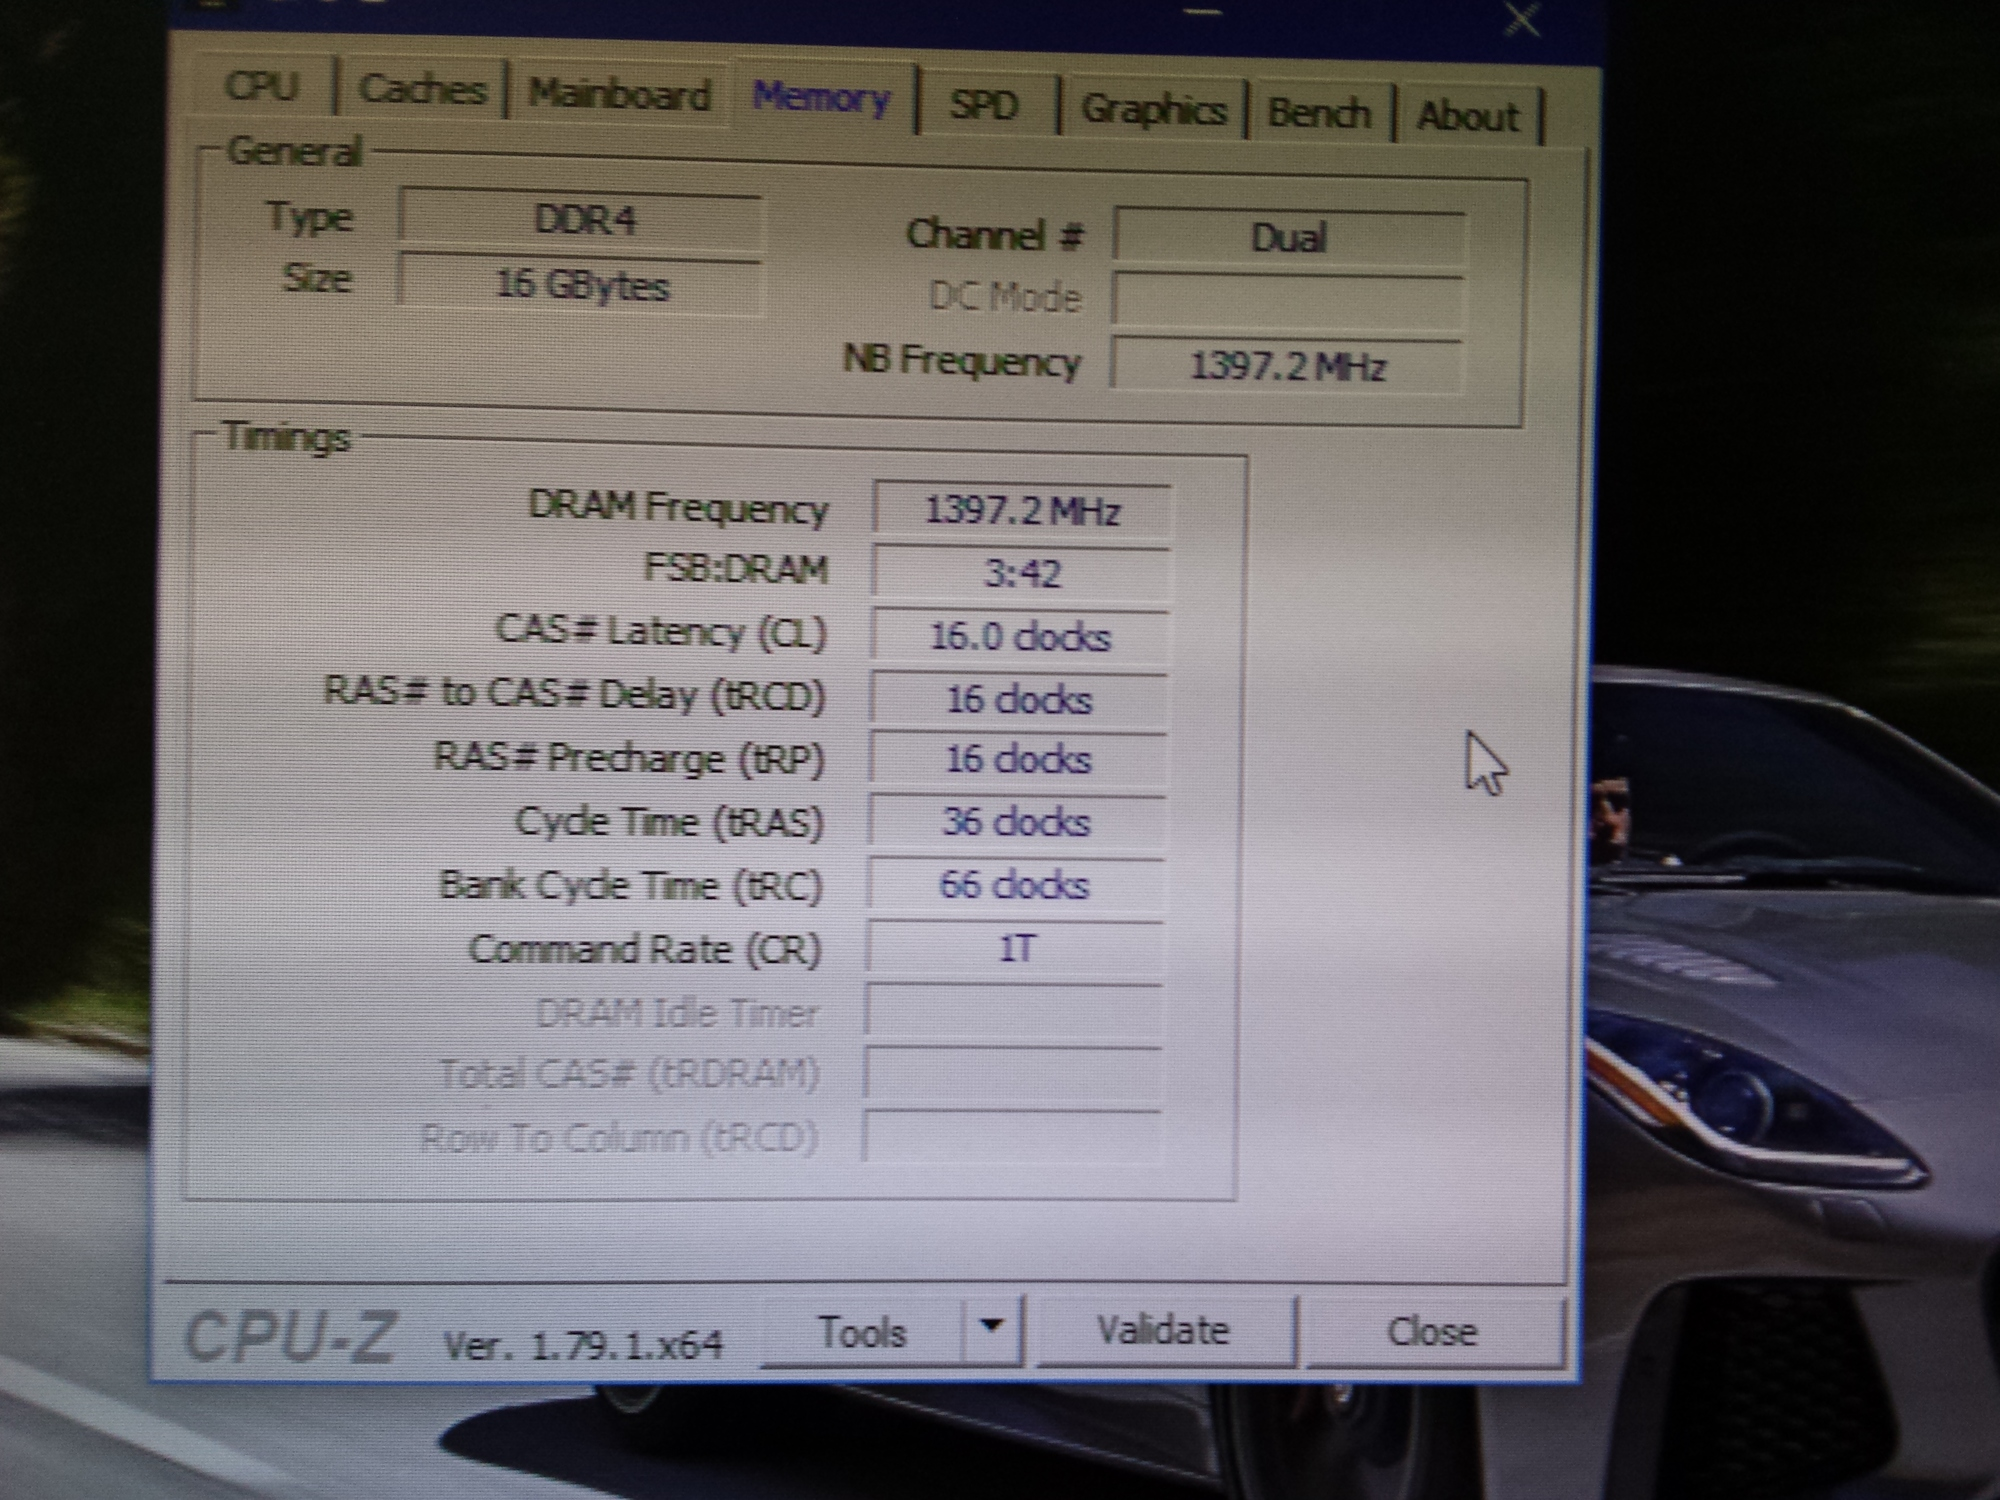 RAM speed to 3200MHz - CPUs, Motherboards, and Memory - Linus Tech Tips